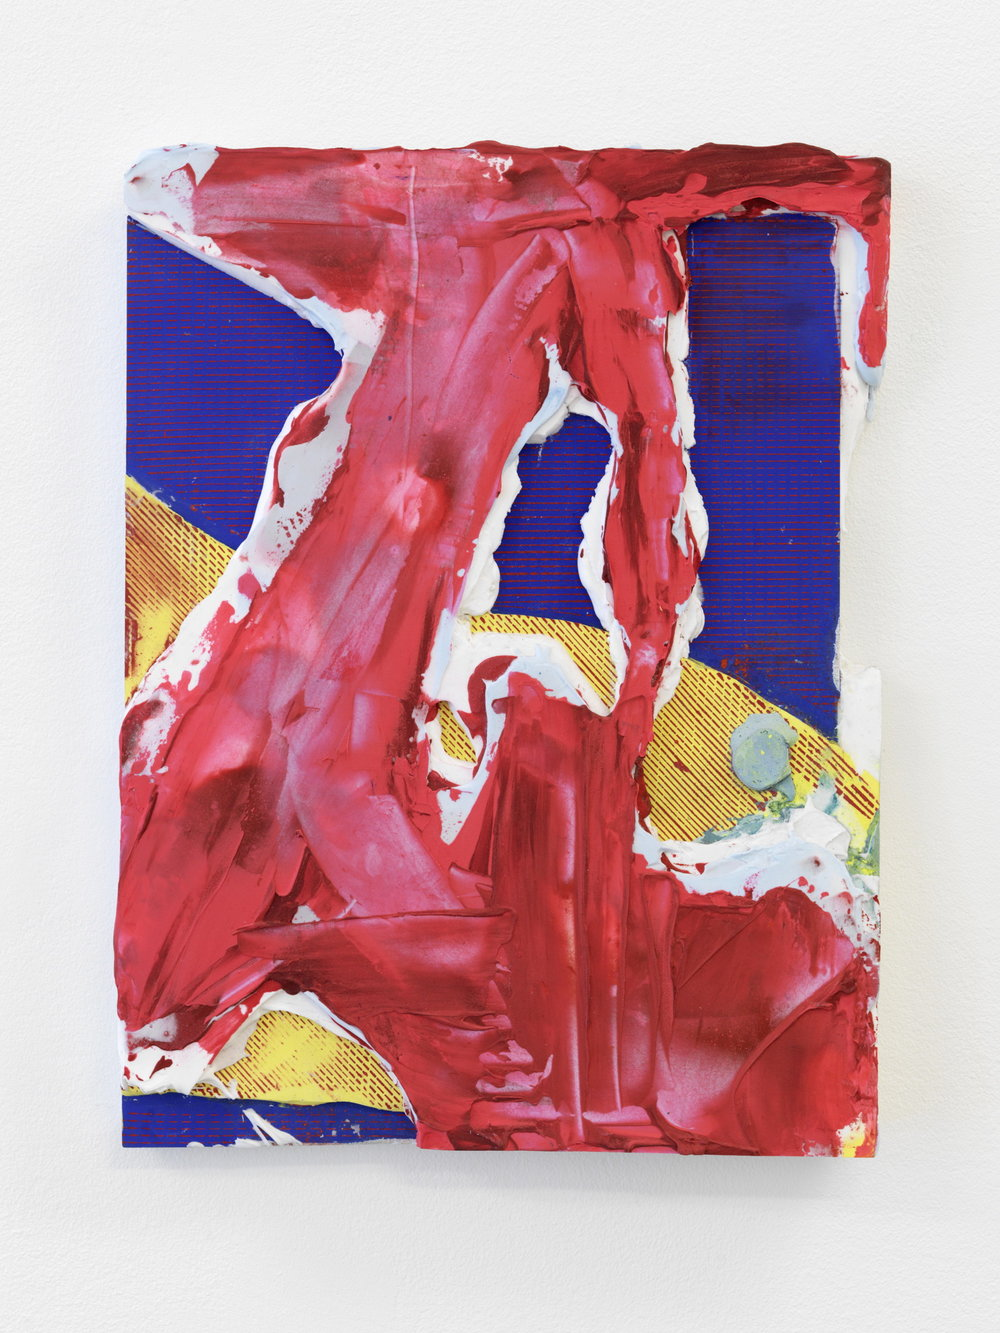 Nicolas Roggy,  Untitled,  2013, pigment, gesso and acrylic medium on PVC, 16 x 12 in.